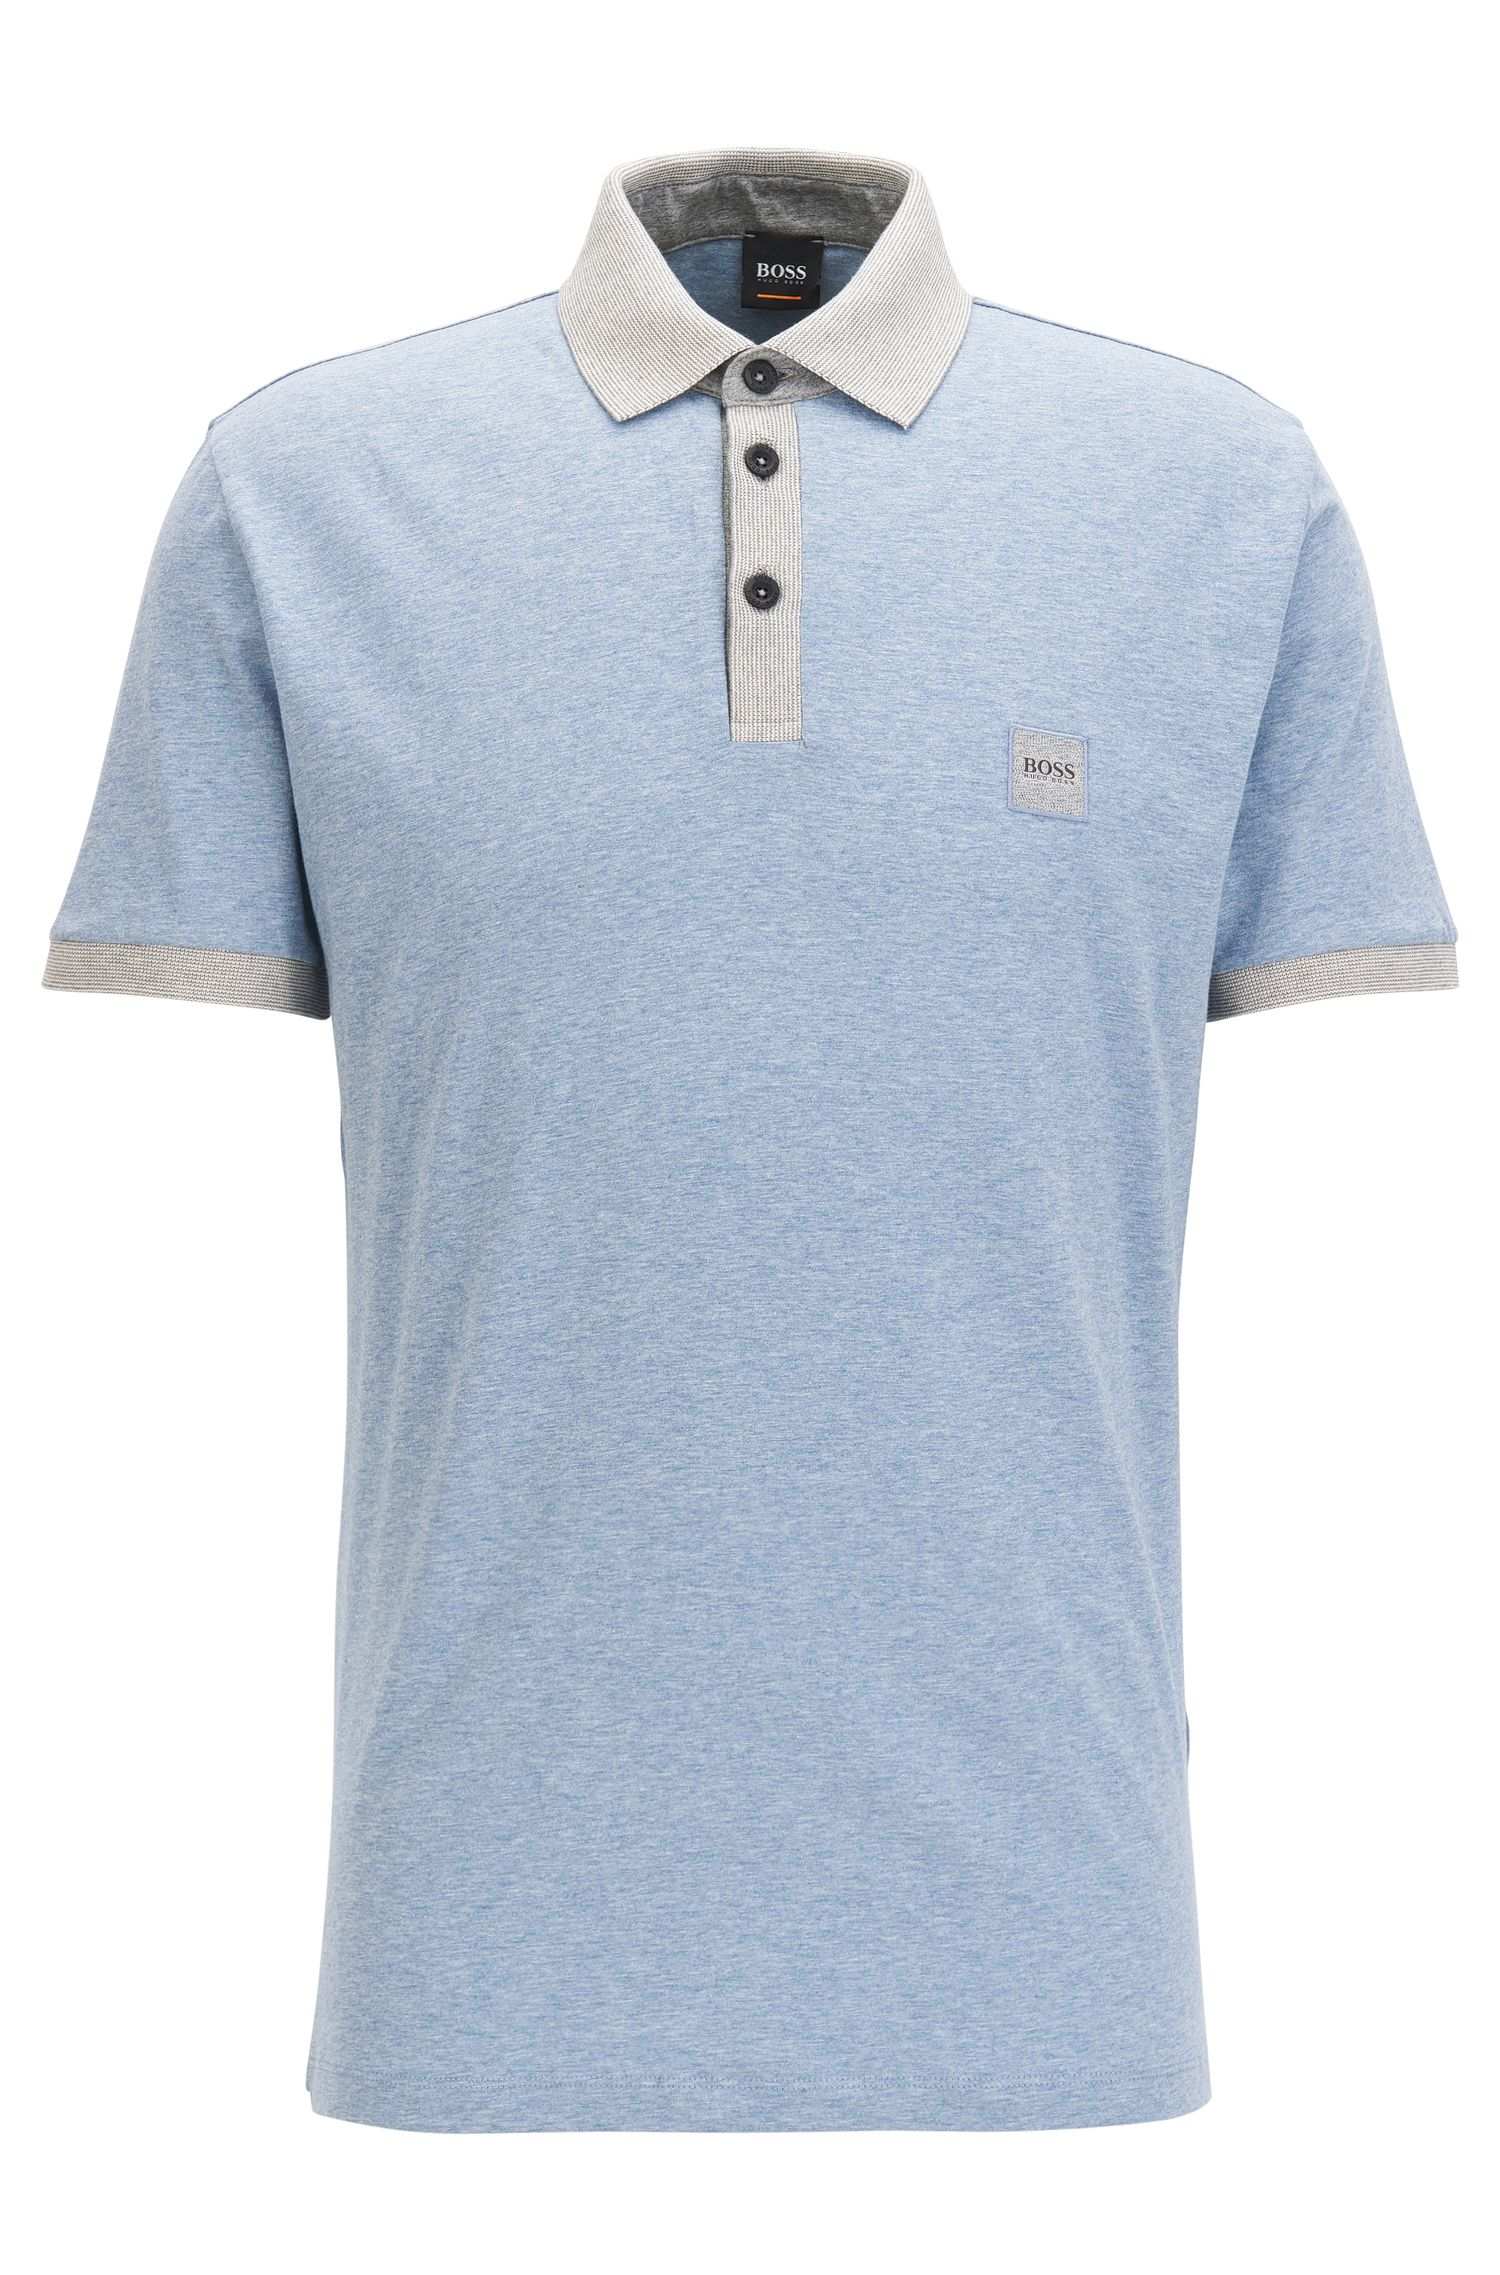 Cotton polo shirt with contrasts